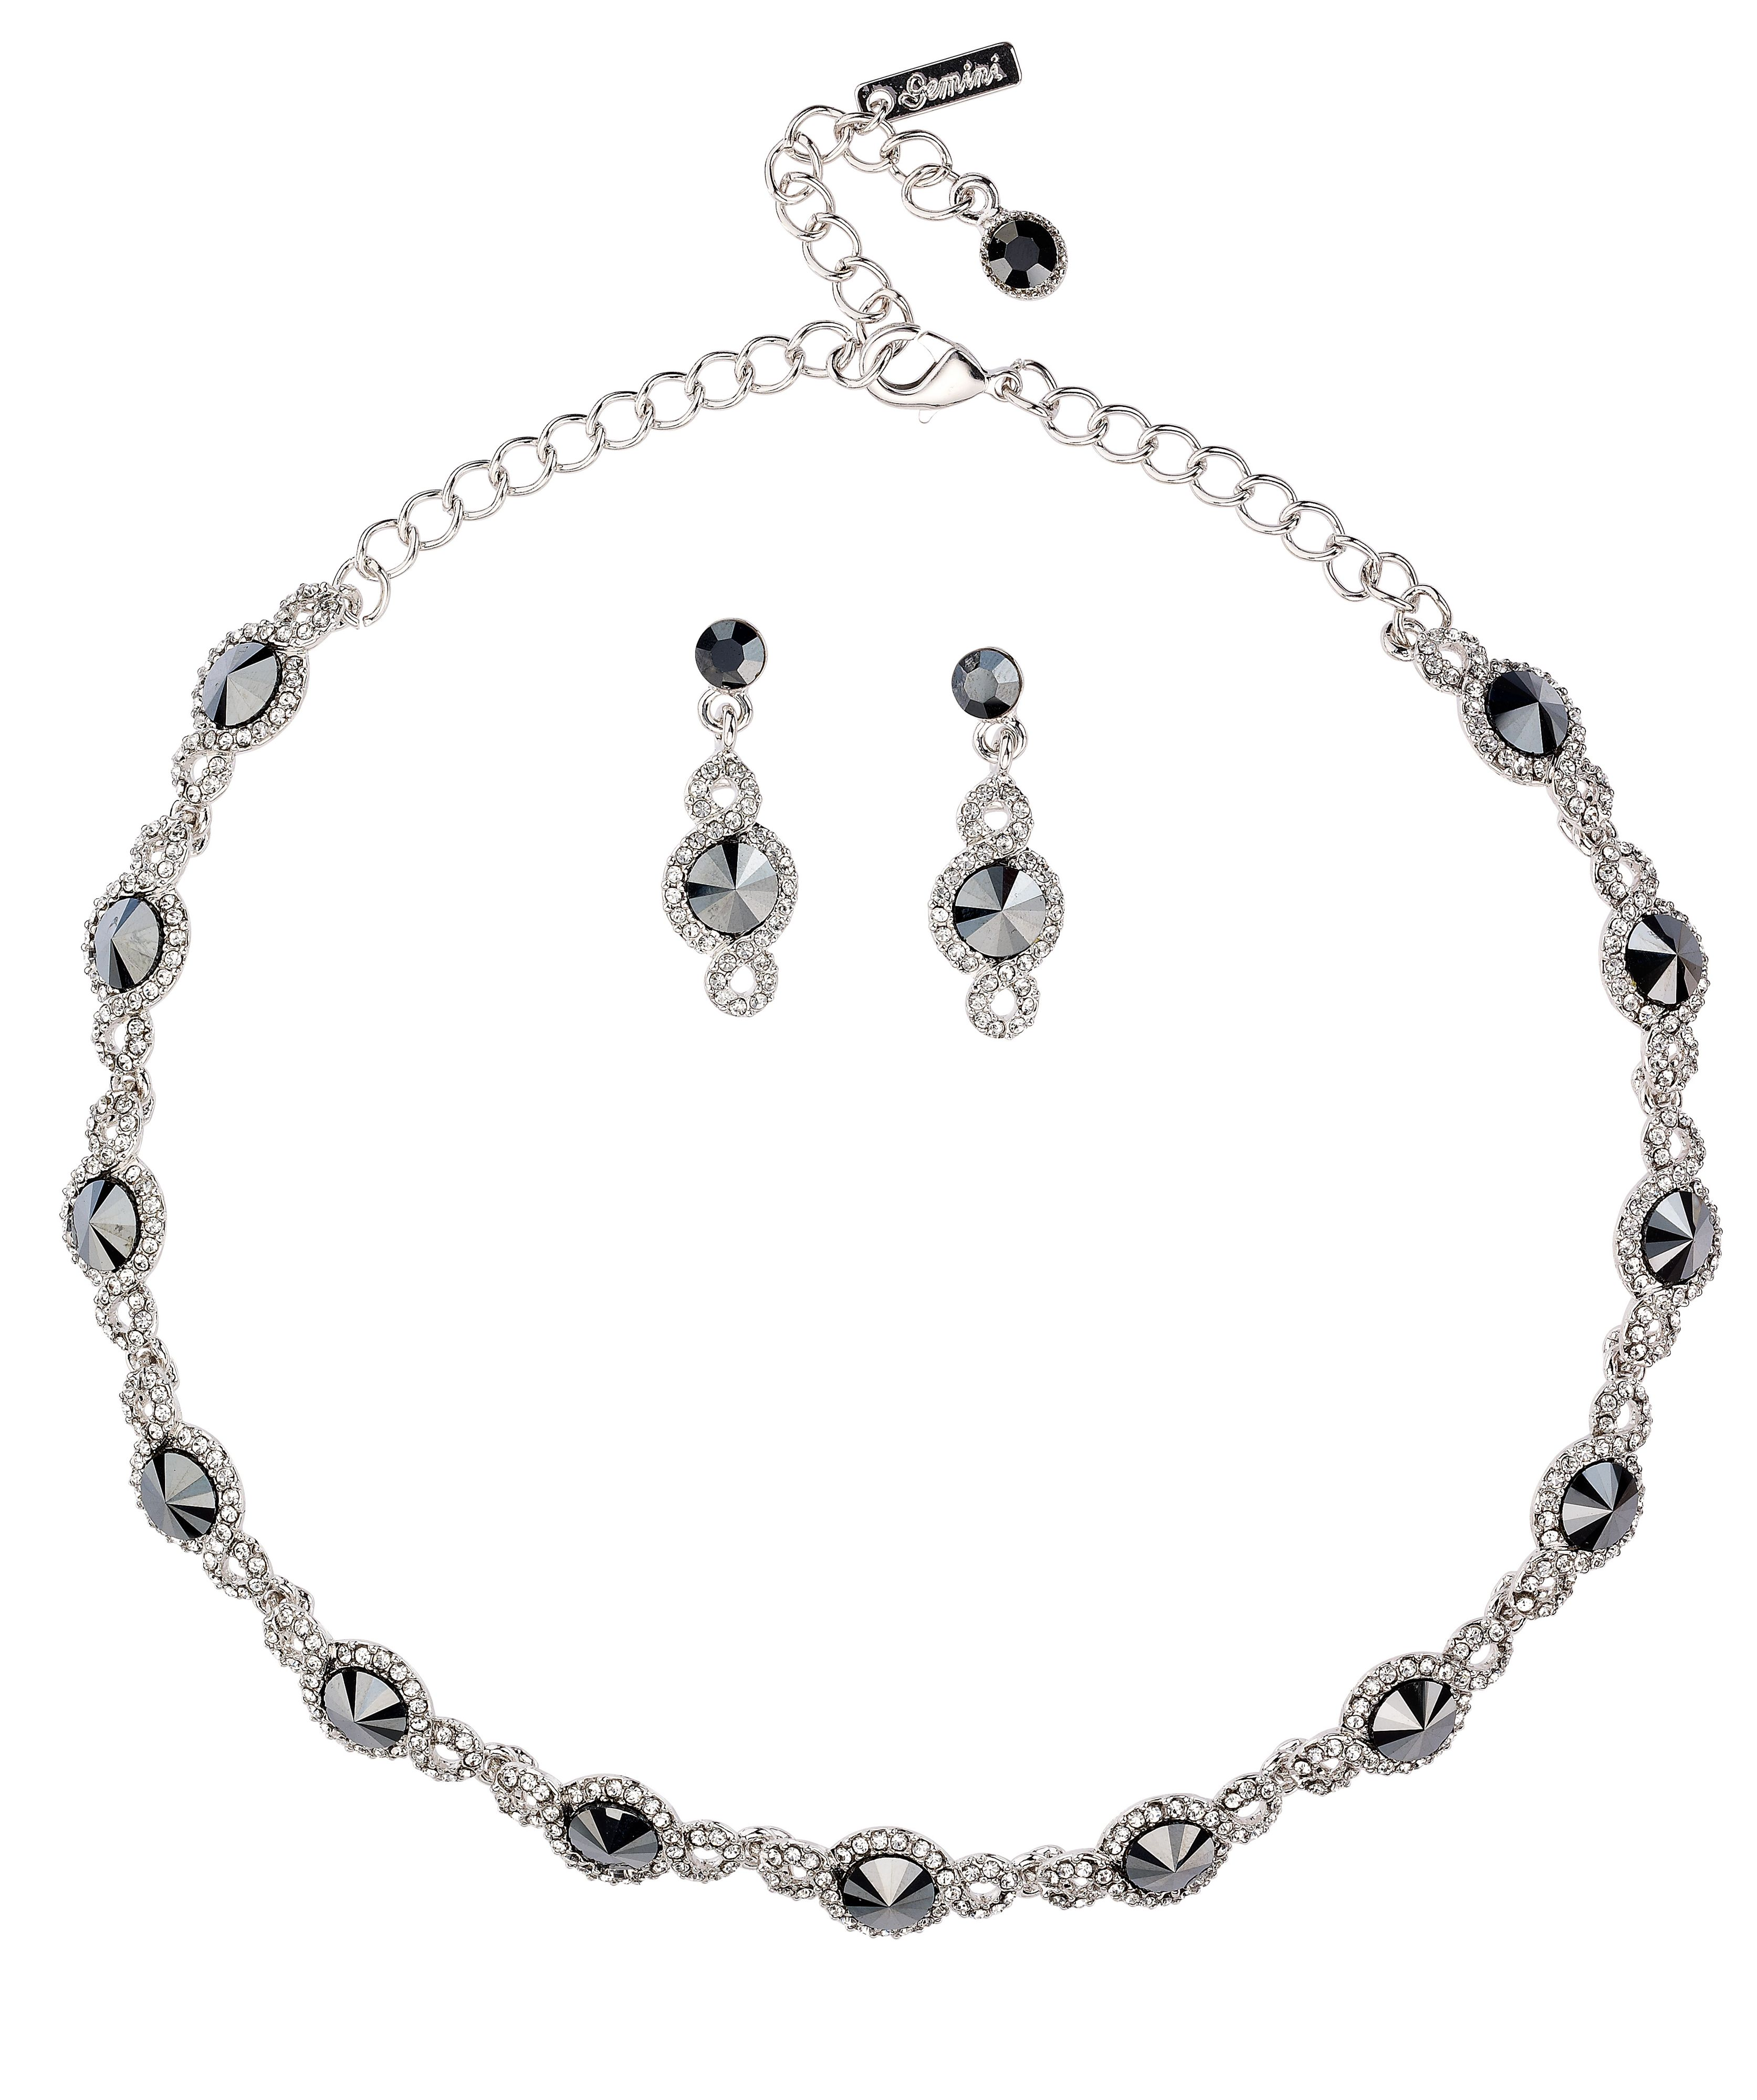 Crystal link swirl necklace set